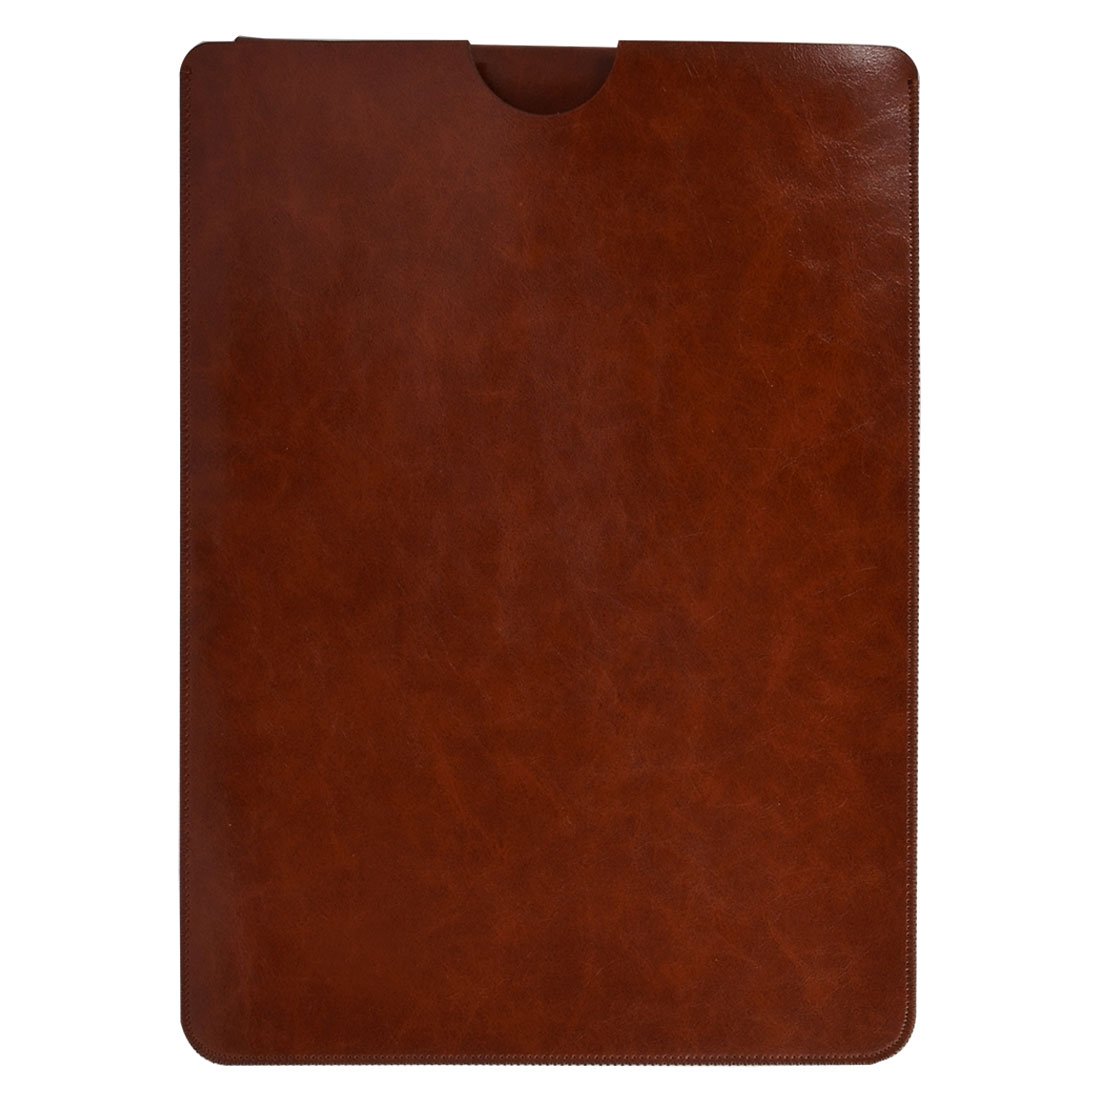 PC Computer PU Leather Notebook Case Cover Laptop Sleeve Brown for Macbook Air 13 Inch